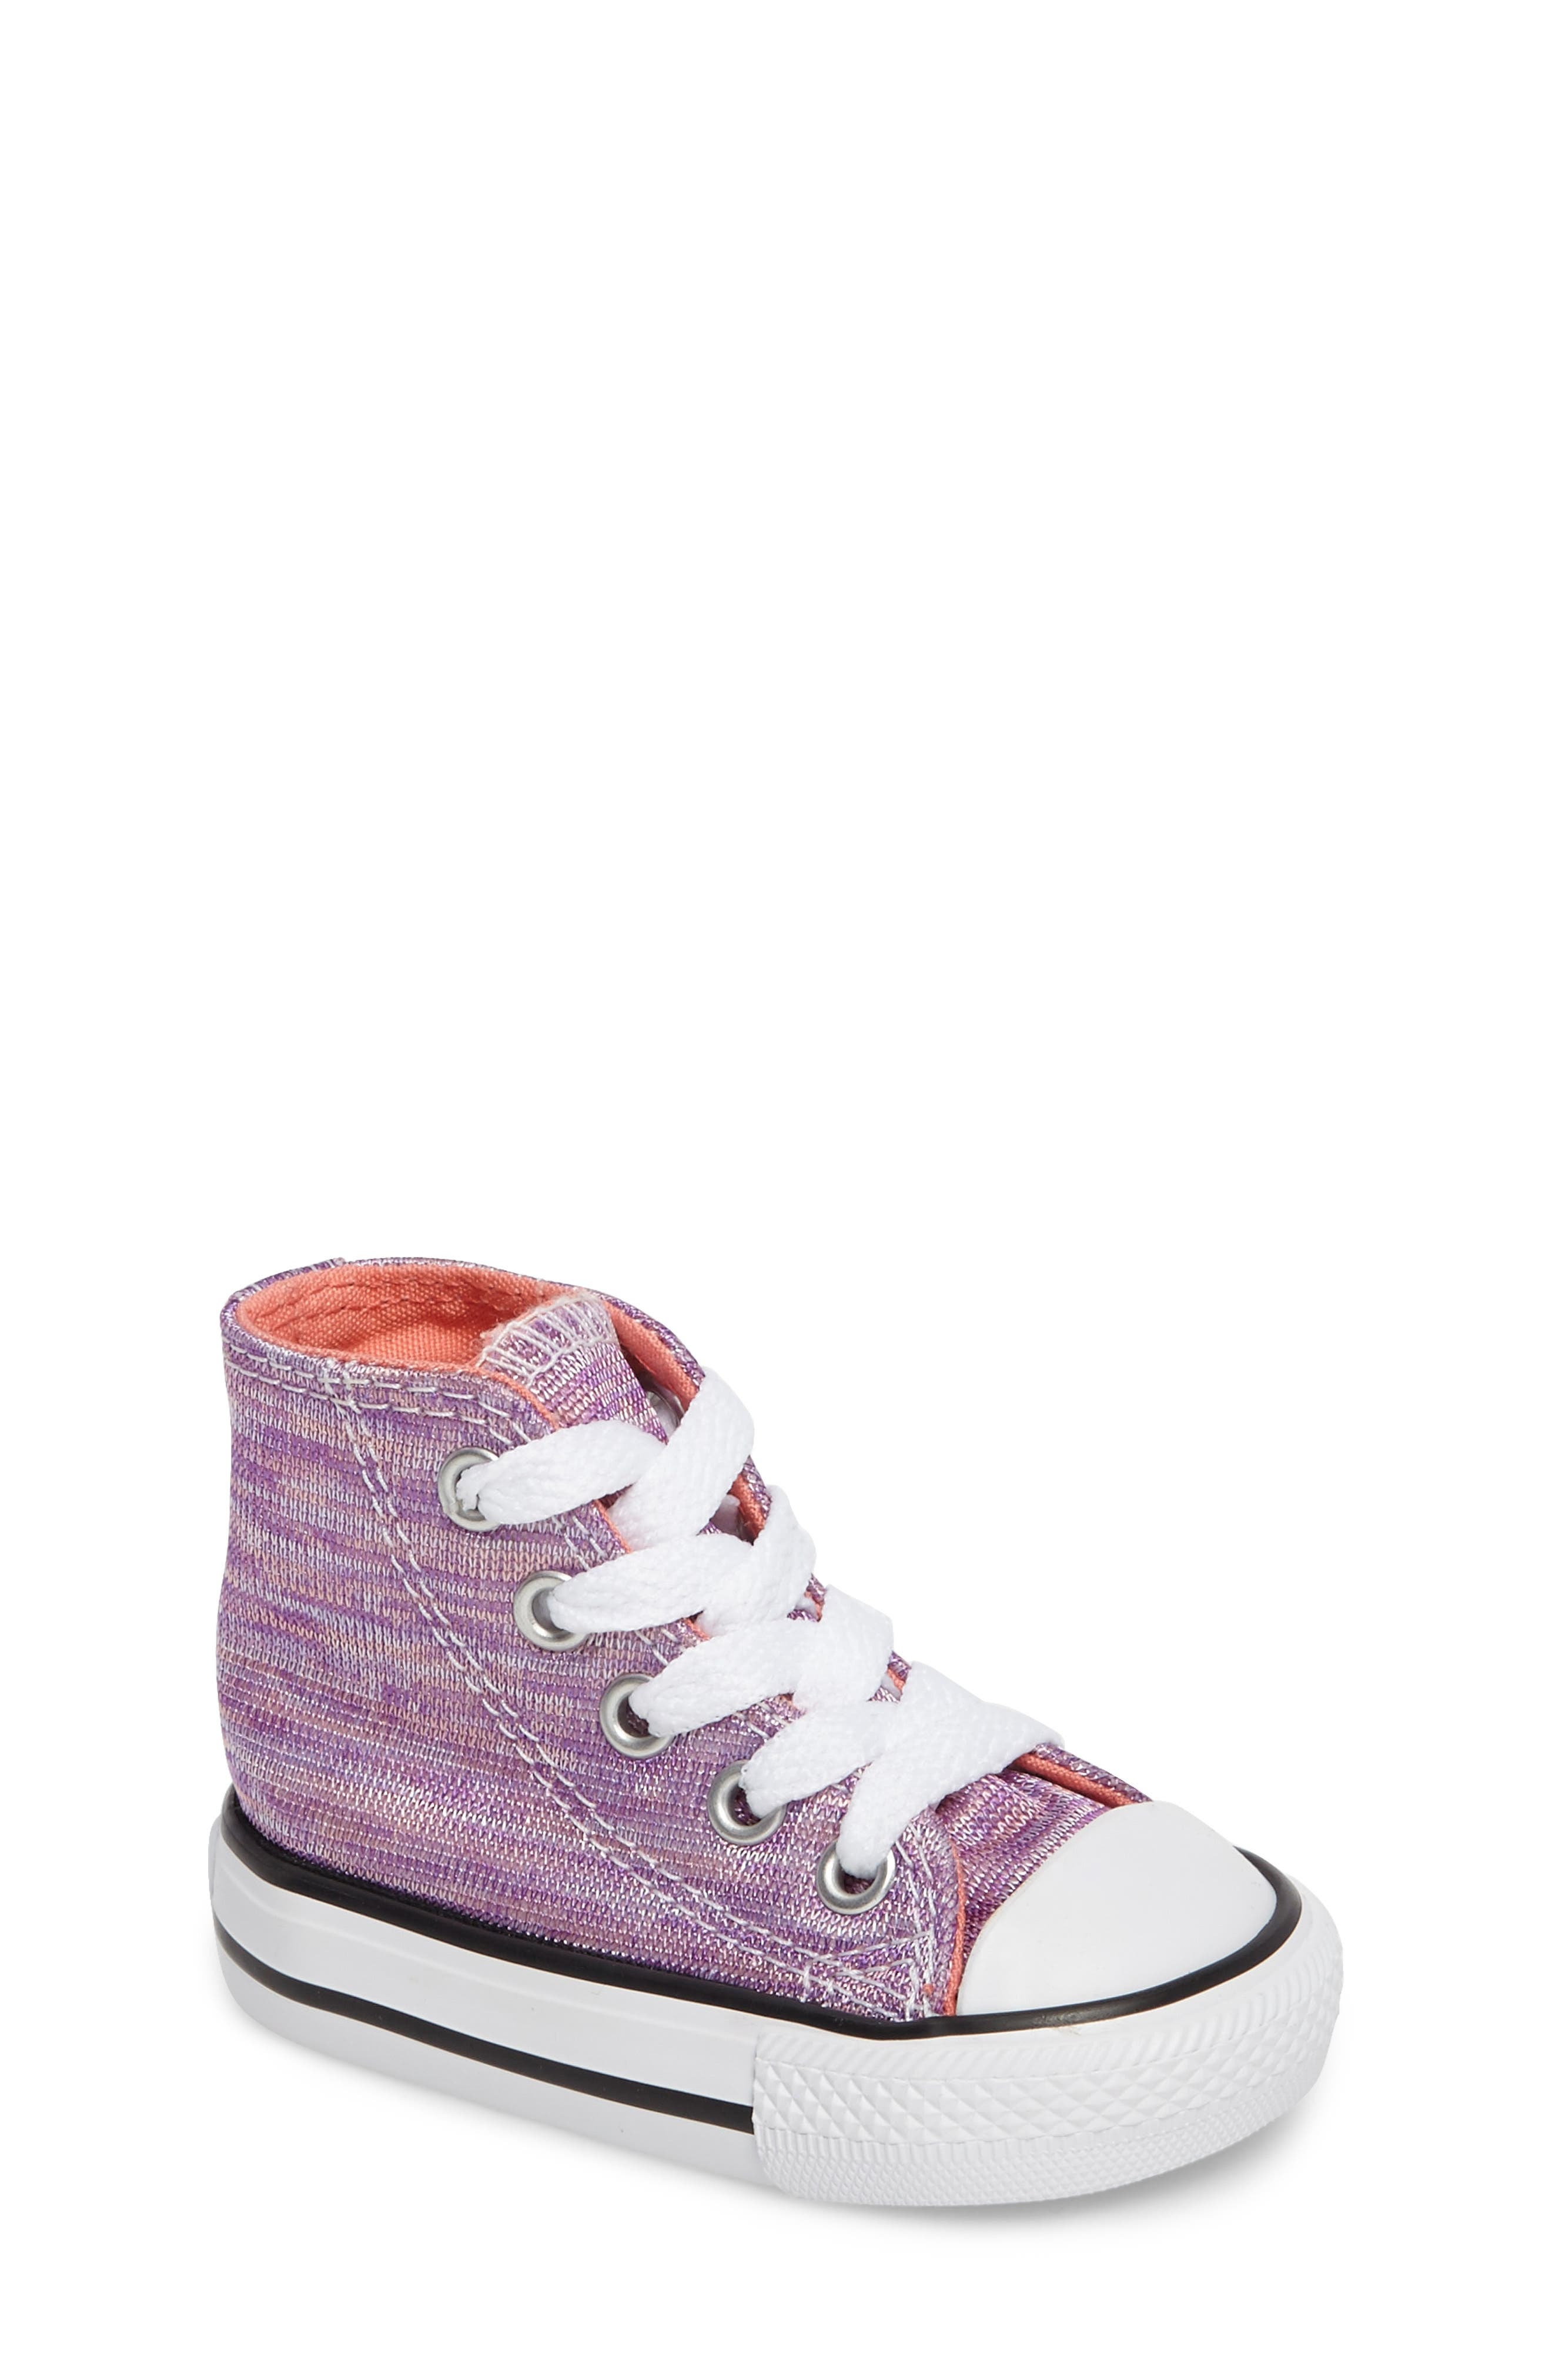 Chuck Taylor<sup>®</sup> All Star<sup>®</sup> Knit High Top Sneaker,                             Main thumbnail 1, color,                             504